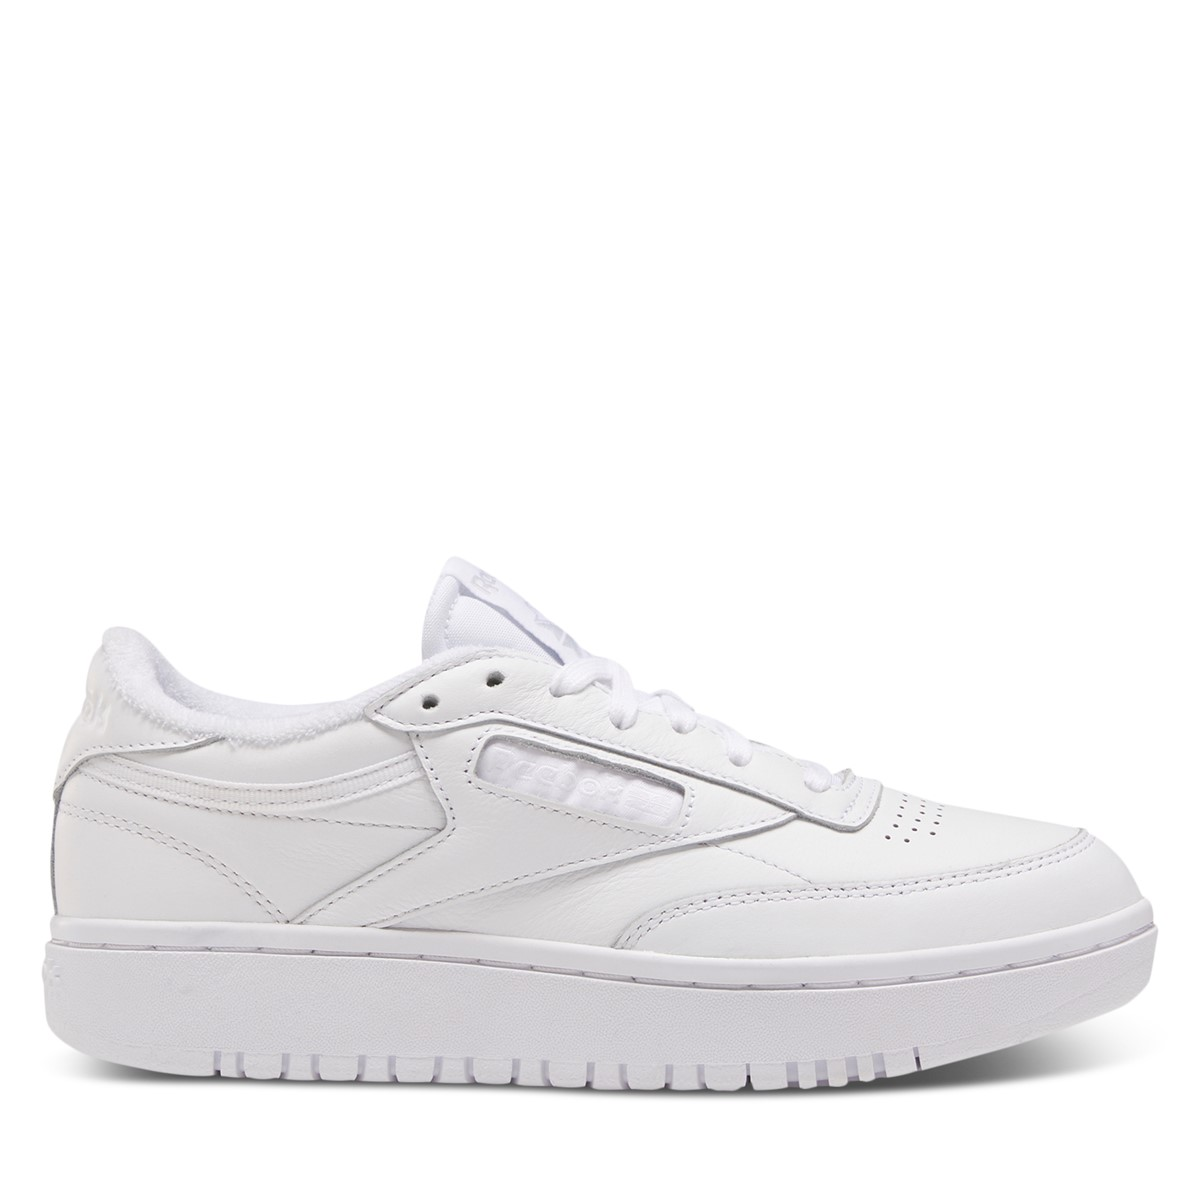 Women's Club C Double Sneakers in White